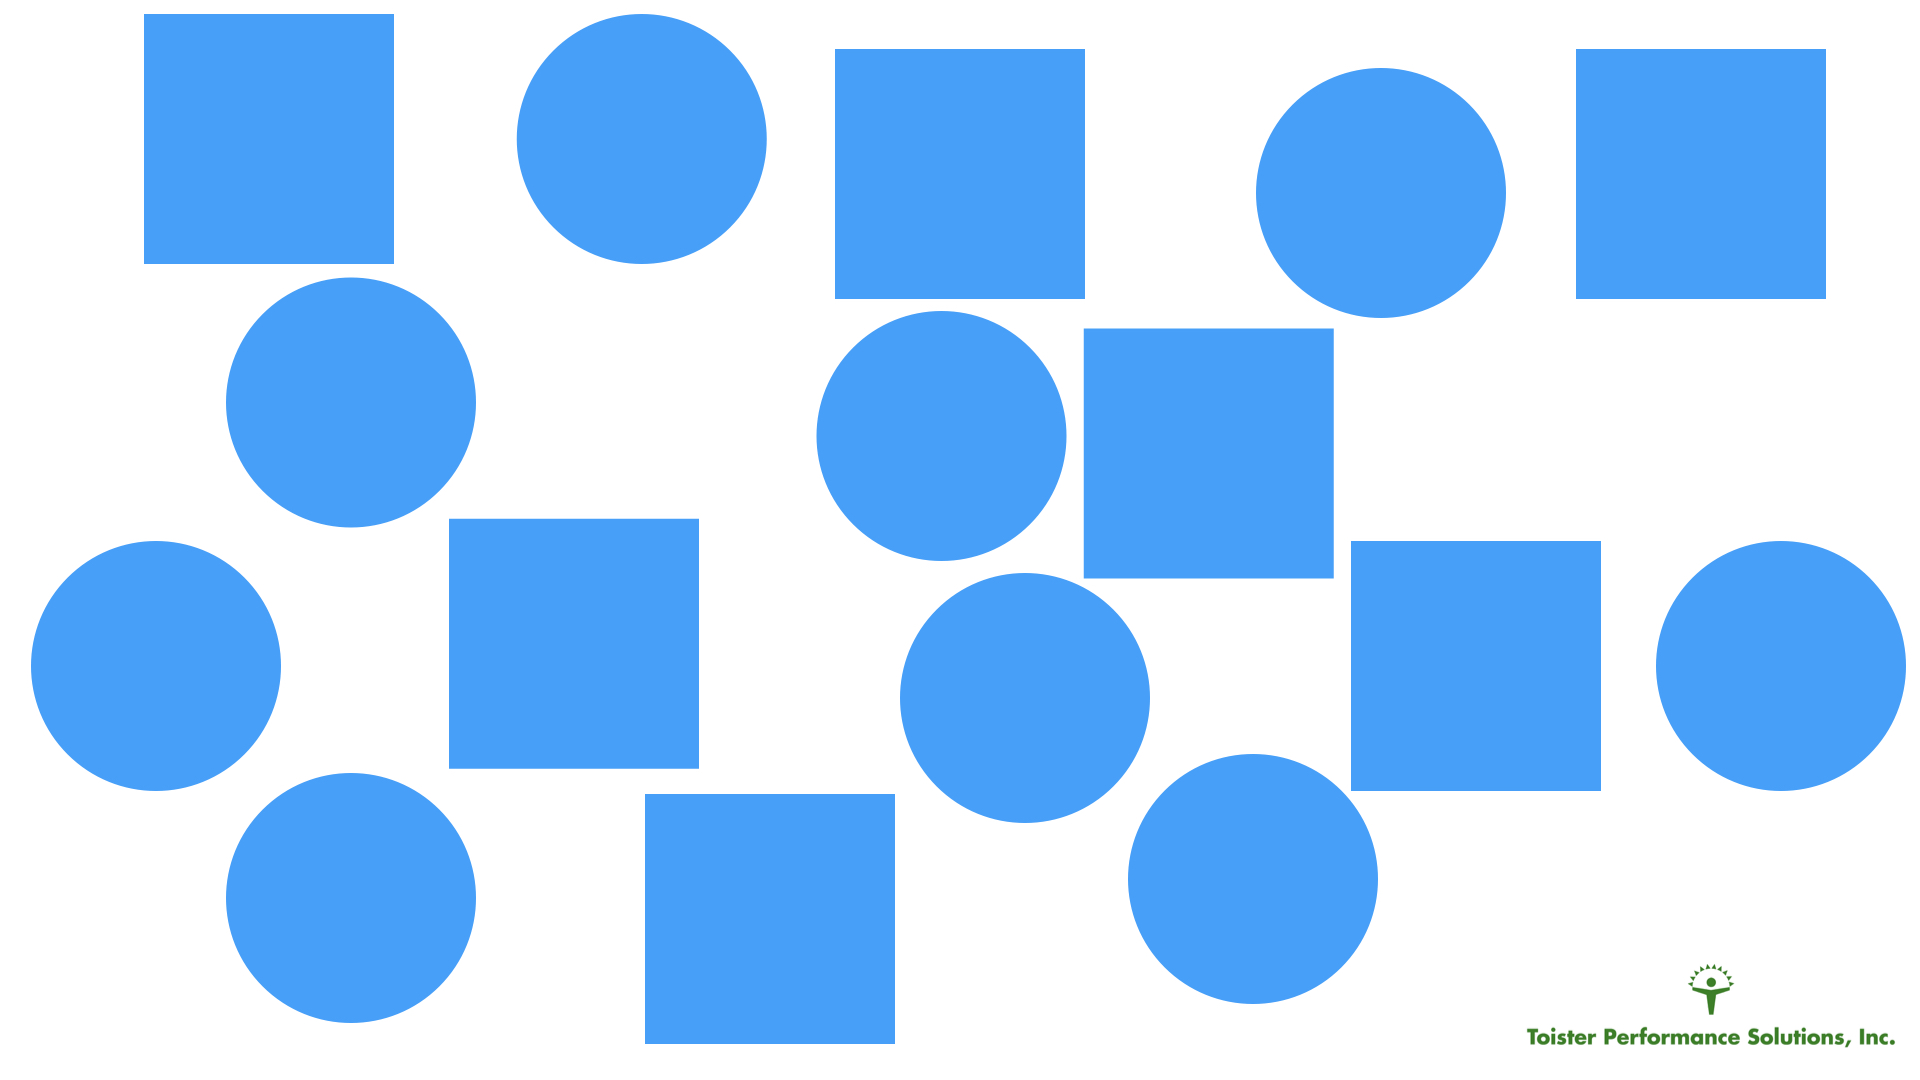 Image of circles and squares.